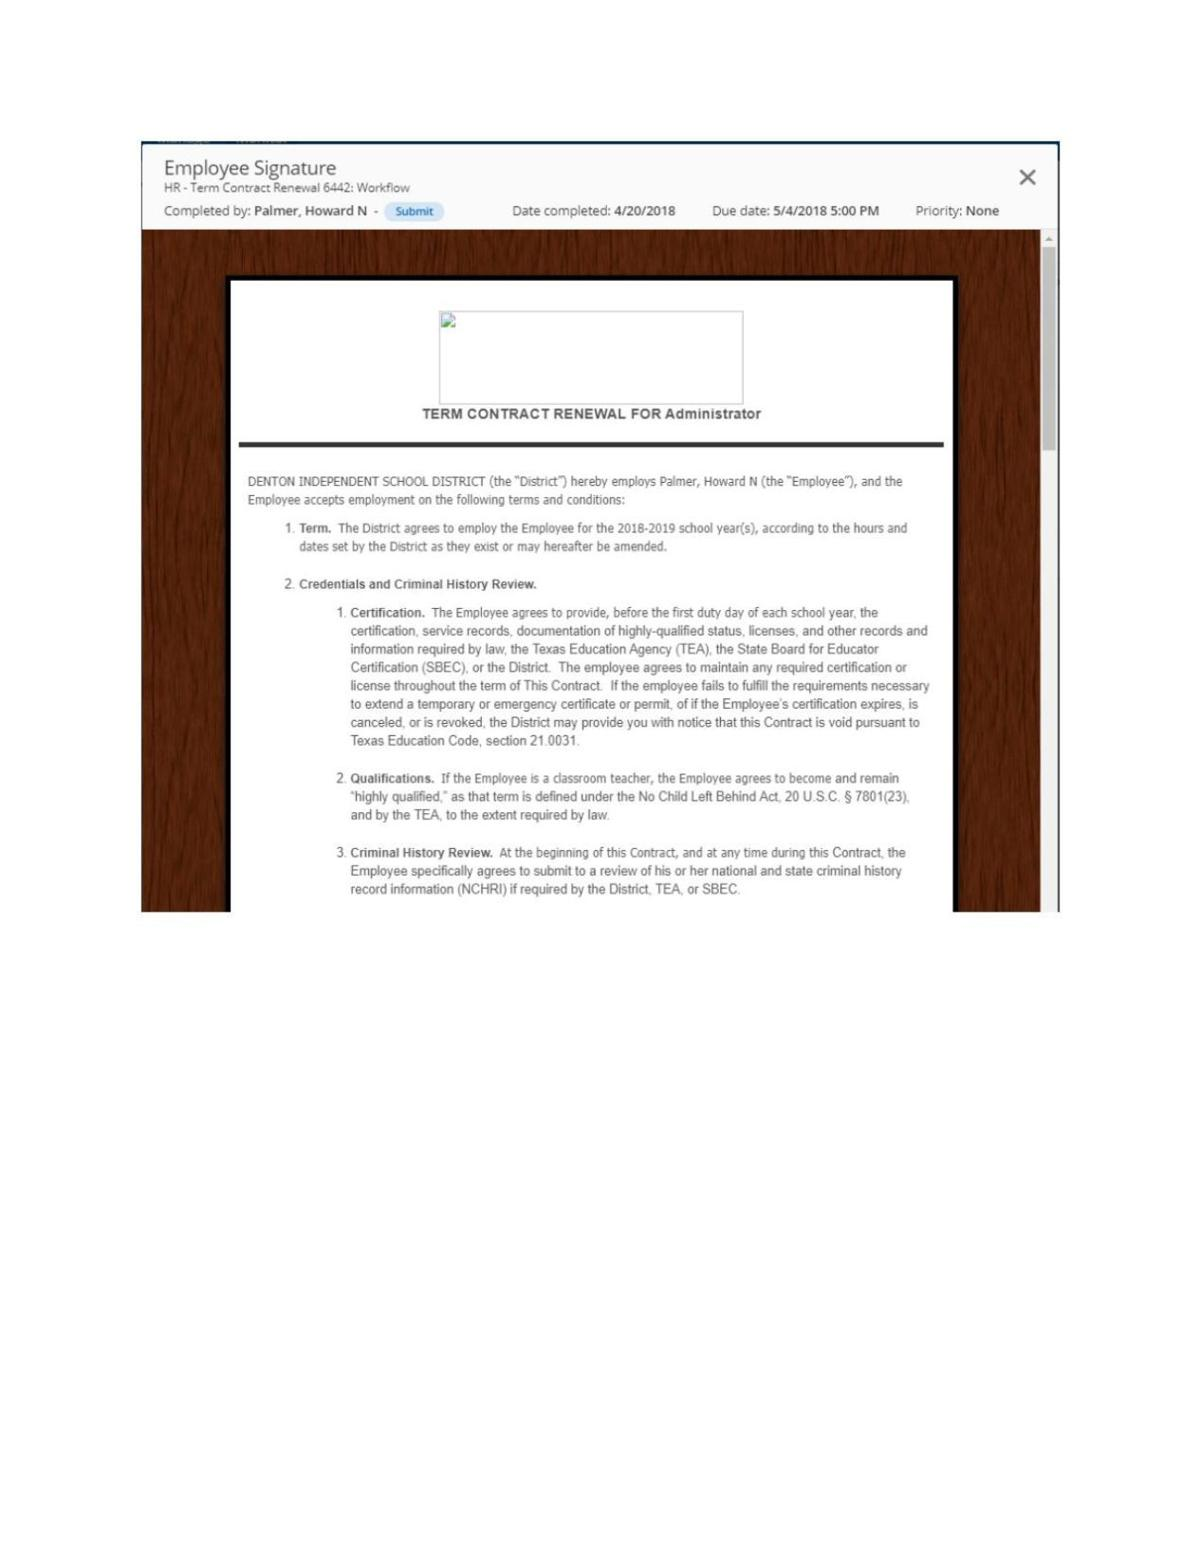 190606_drc_news_palmer_contract.pdf